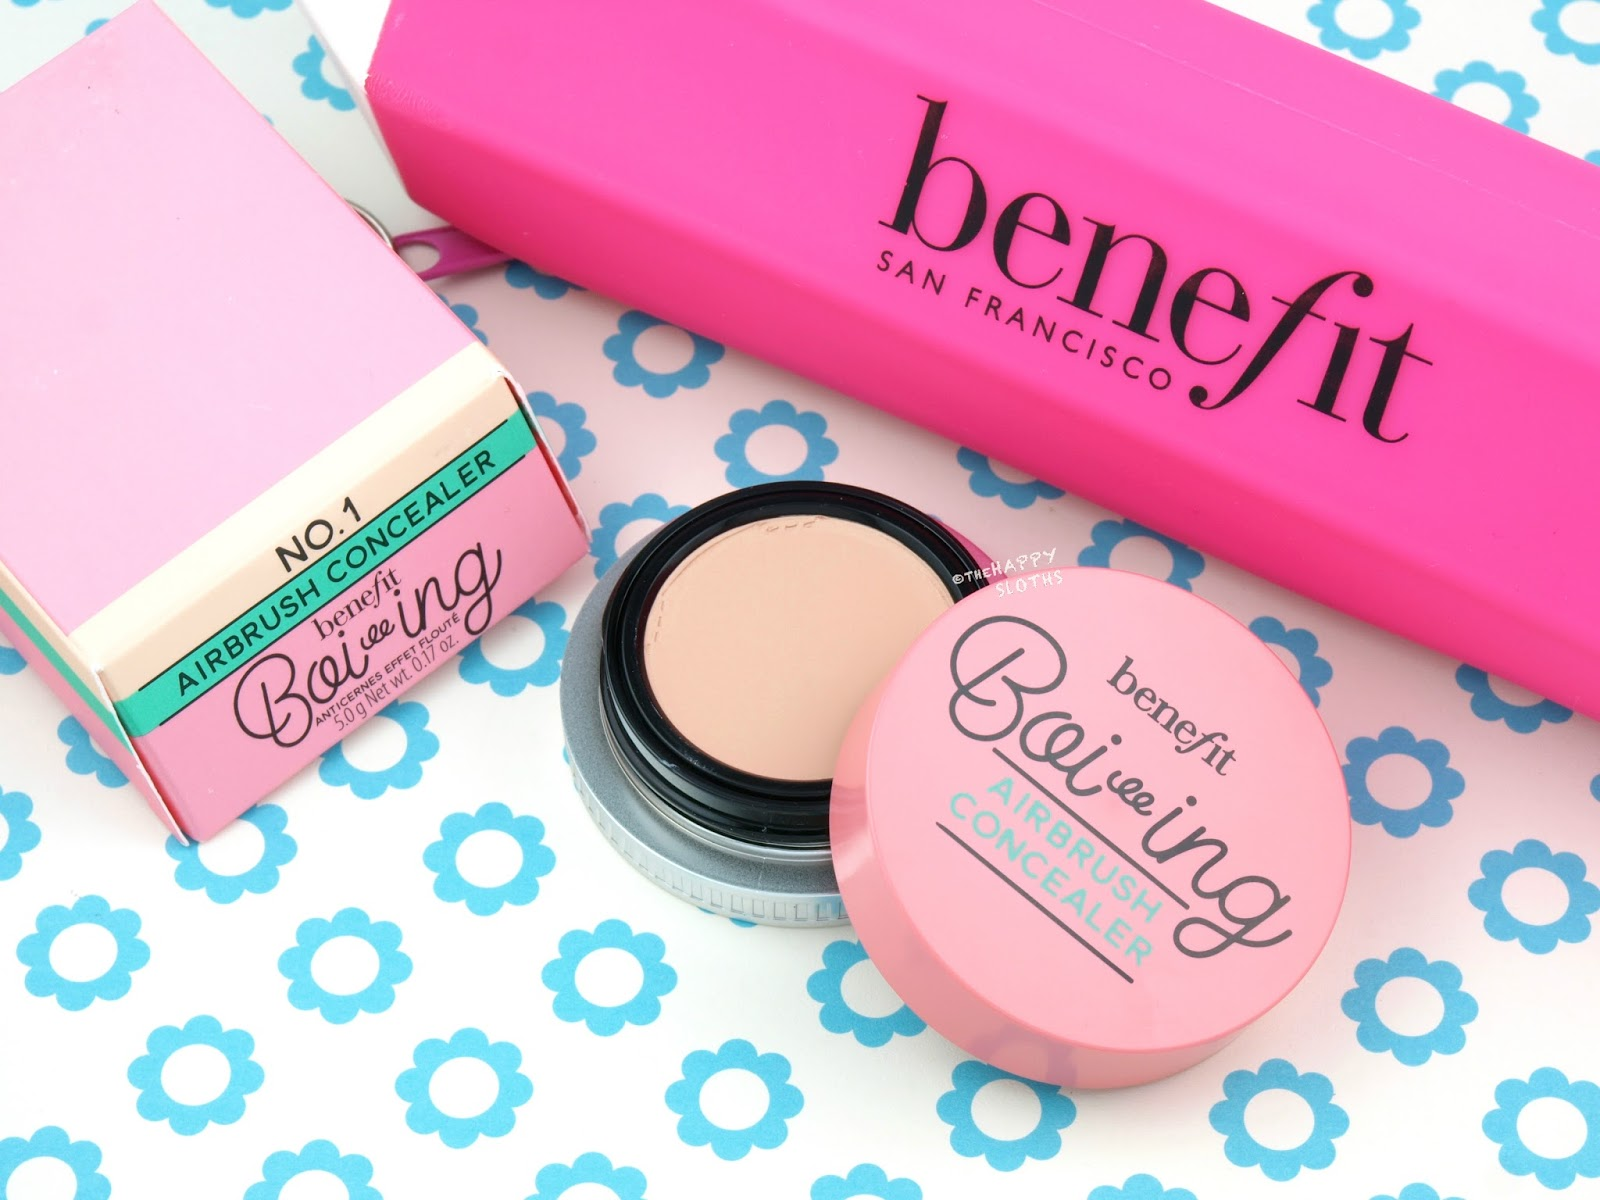 Benefit Cosmetics Boi-ing Airbrush Concealer: Review and Swatches